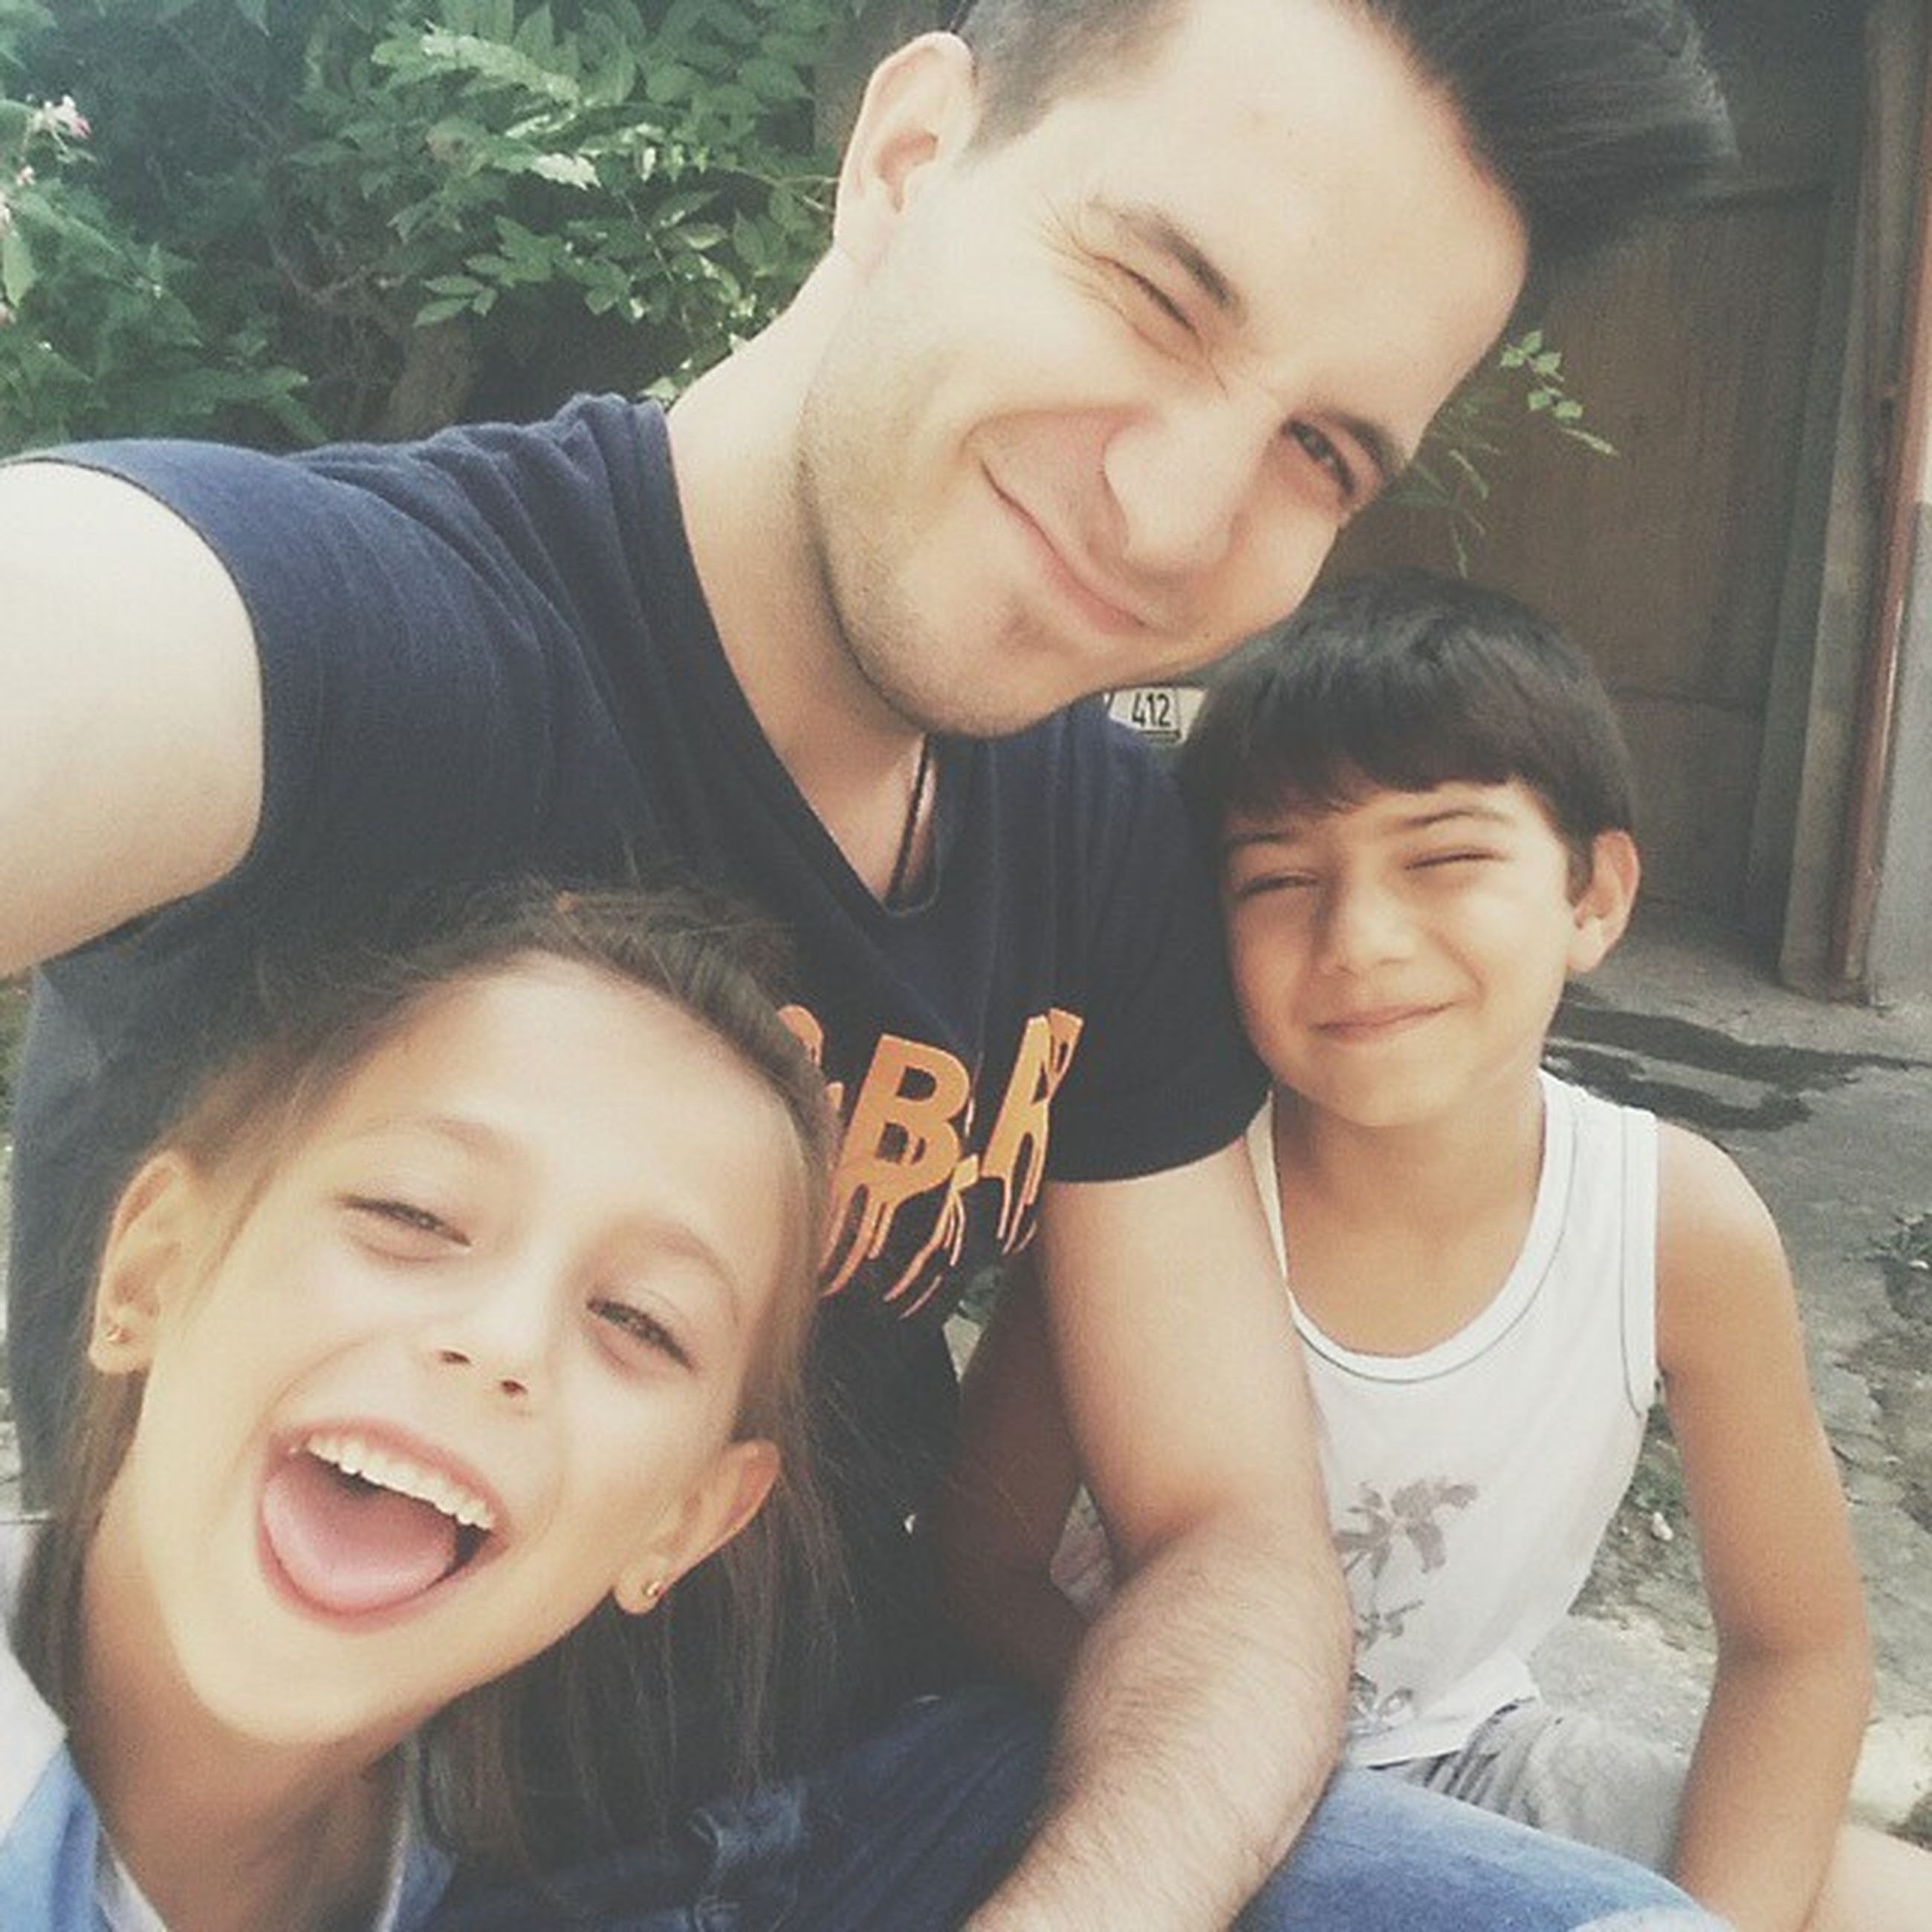 bonding, togetherness, love, person, childhood, lifestyles, family, boys, elementary age, happiness, leisure activity, smiling, portrait, looking at camera, sibling, brother, cute